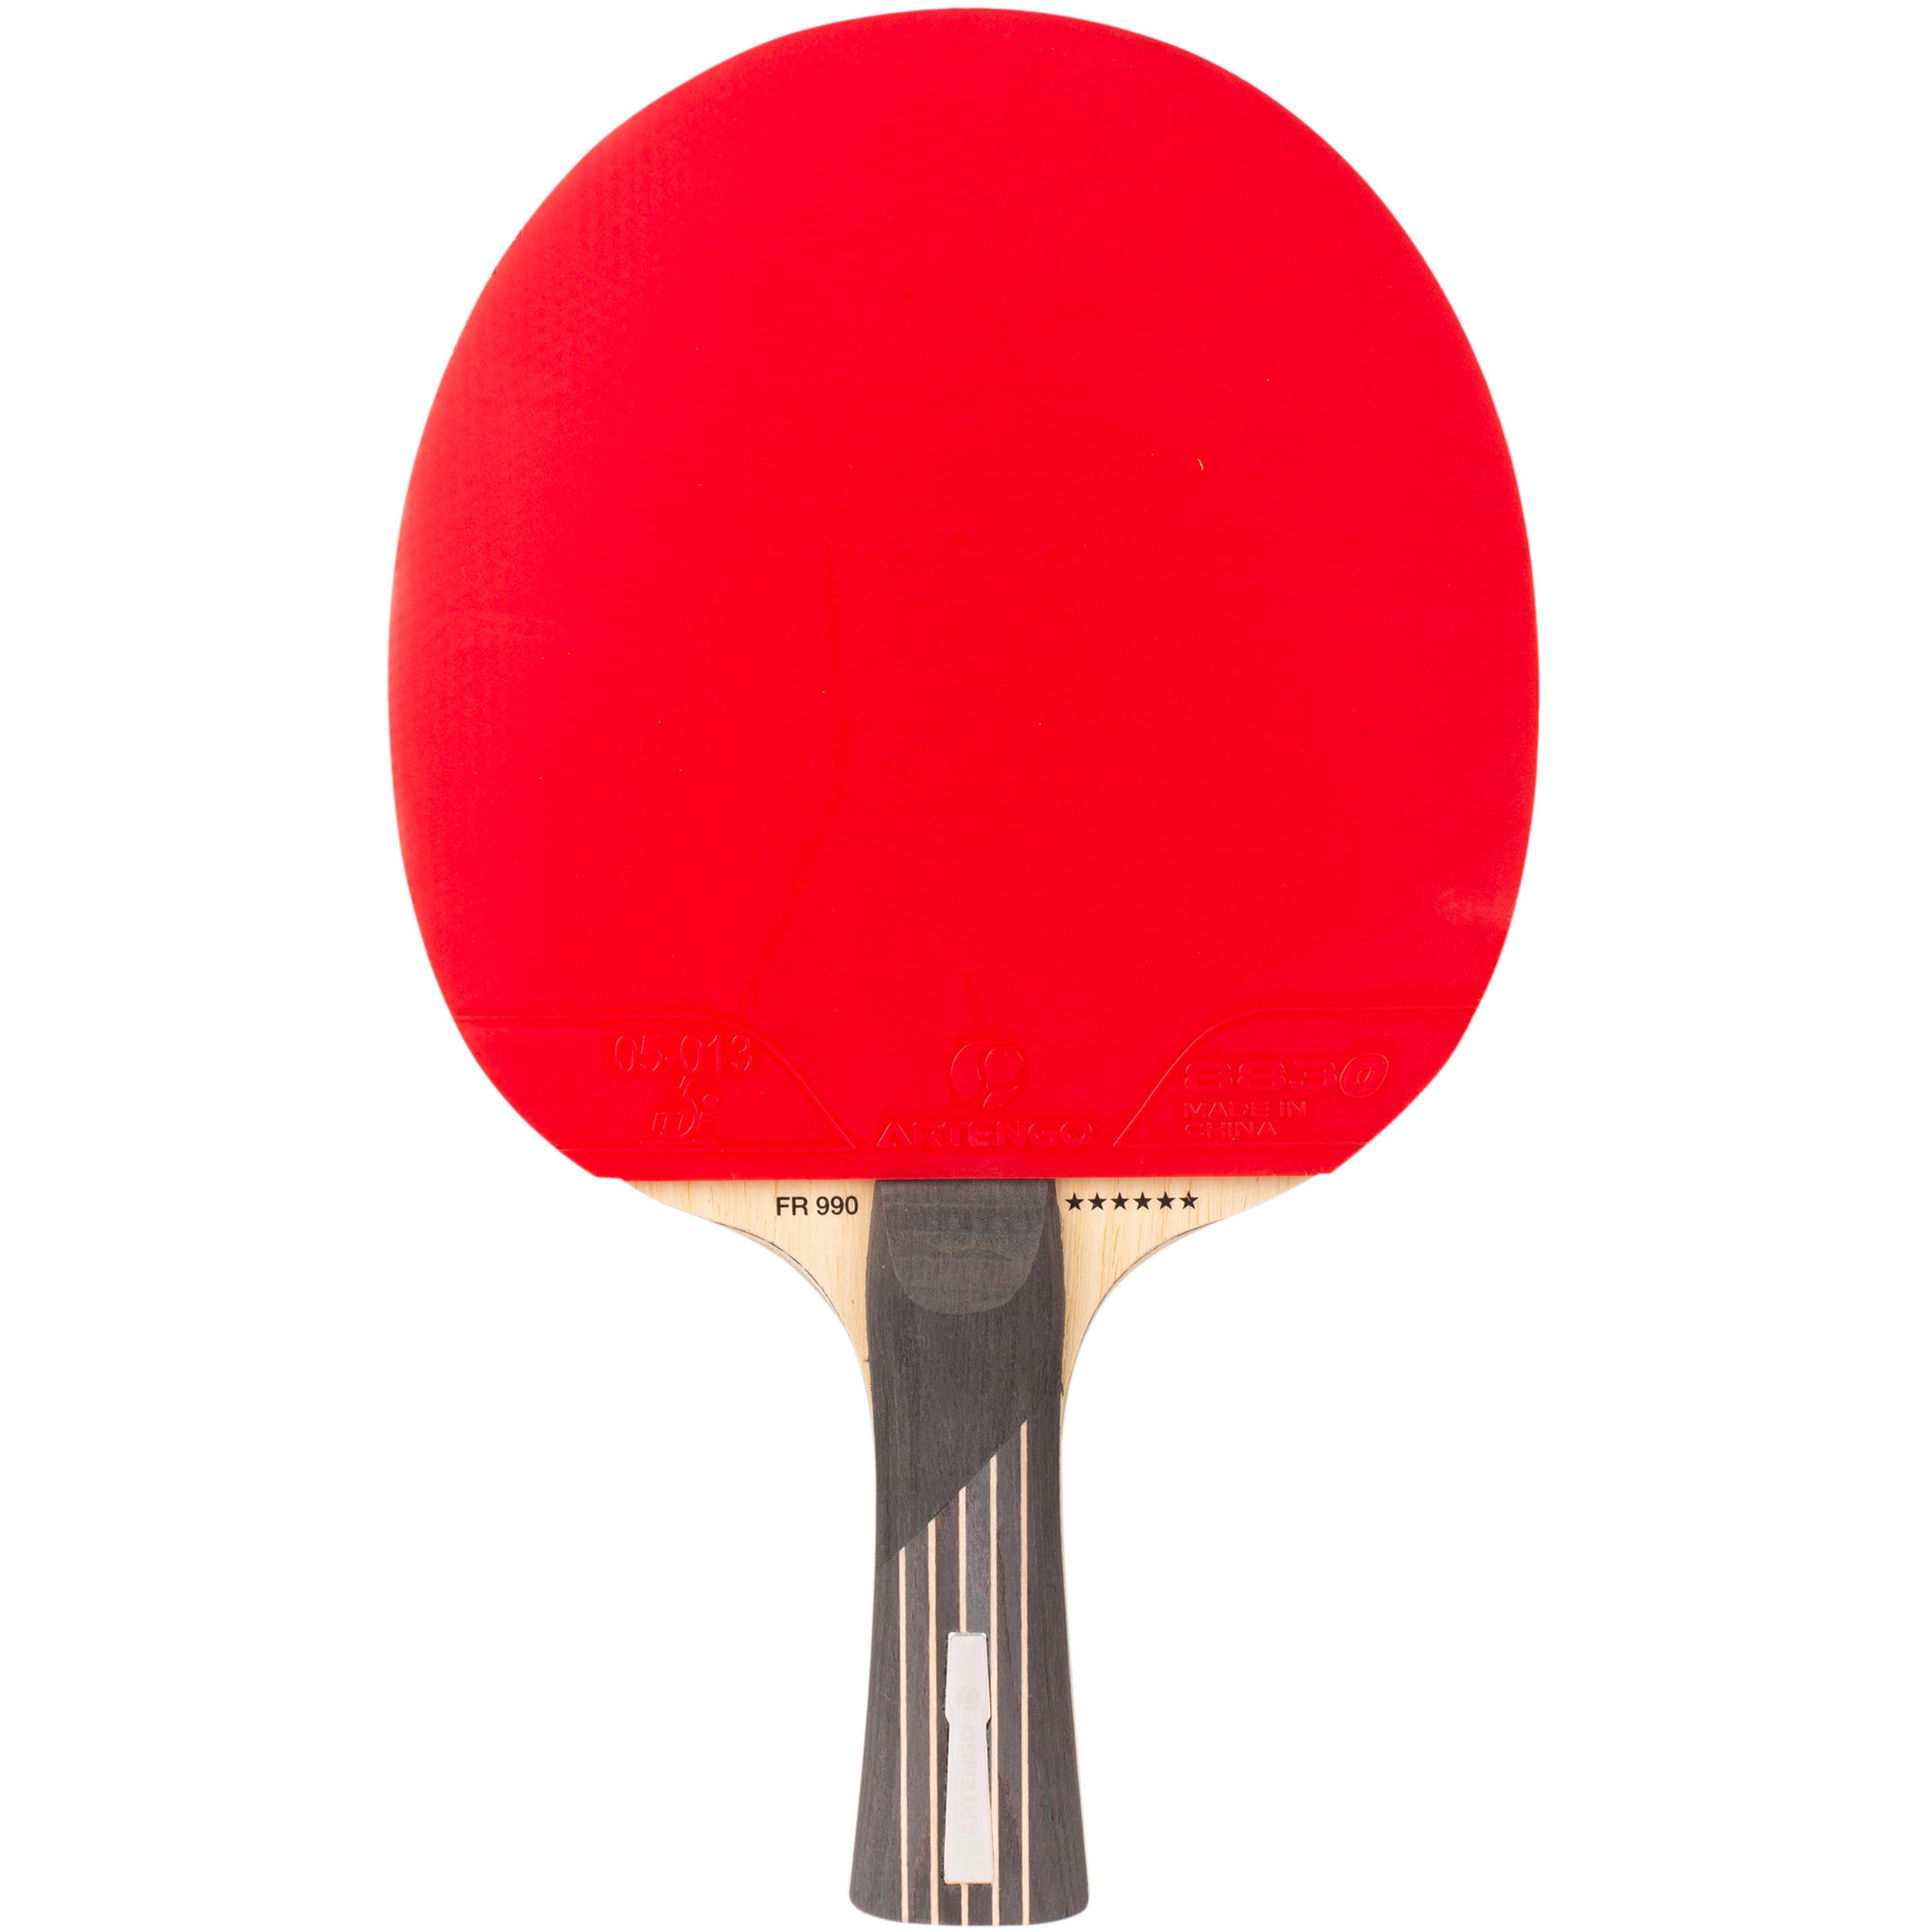 FR 990 6* Table Tennis Paddle